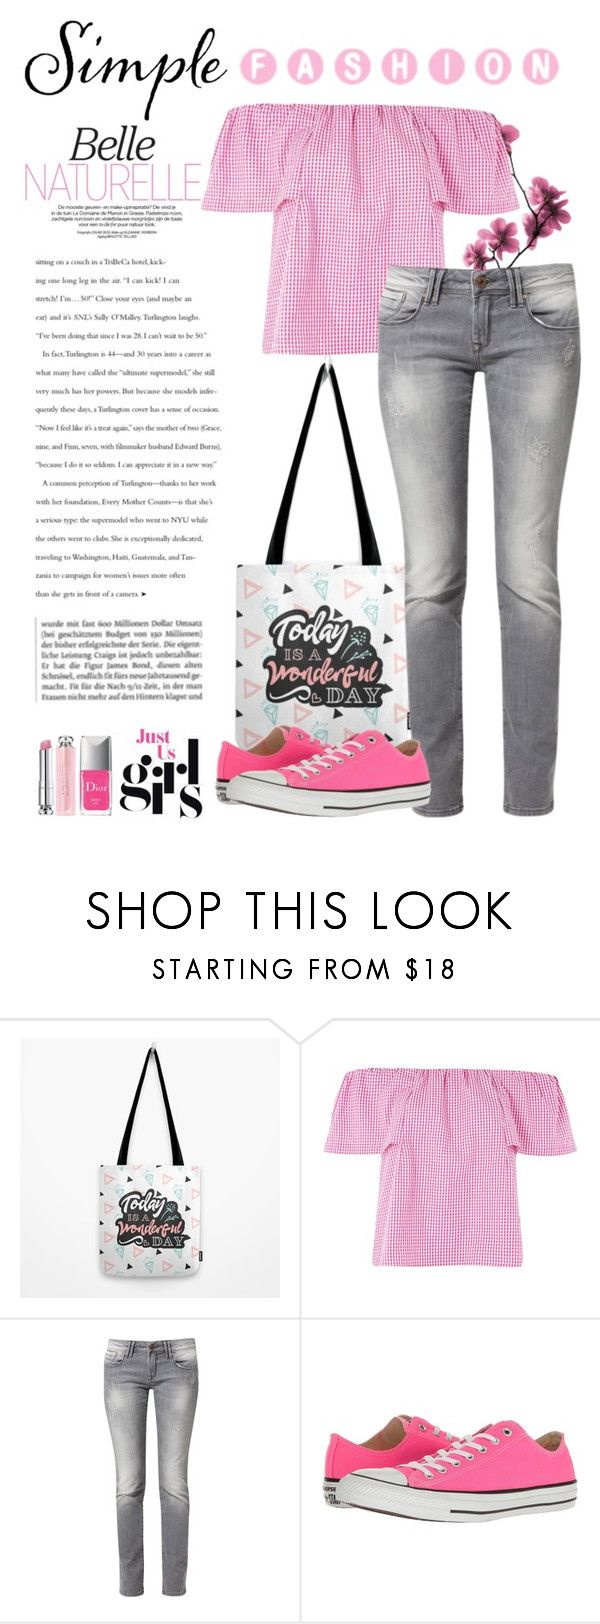 """Gingham Pink Top Simple & Romantic"" by judithhoy ❤ liked on Polyvore featuring Topshop, Mavi, Converse, Christian Dior, simple, Pink, romantic, girly and ginghamtop"